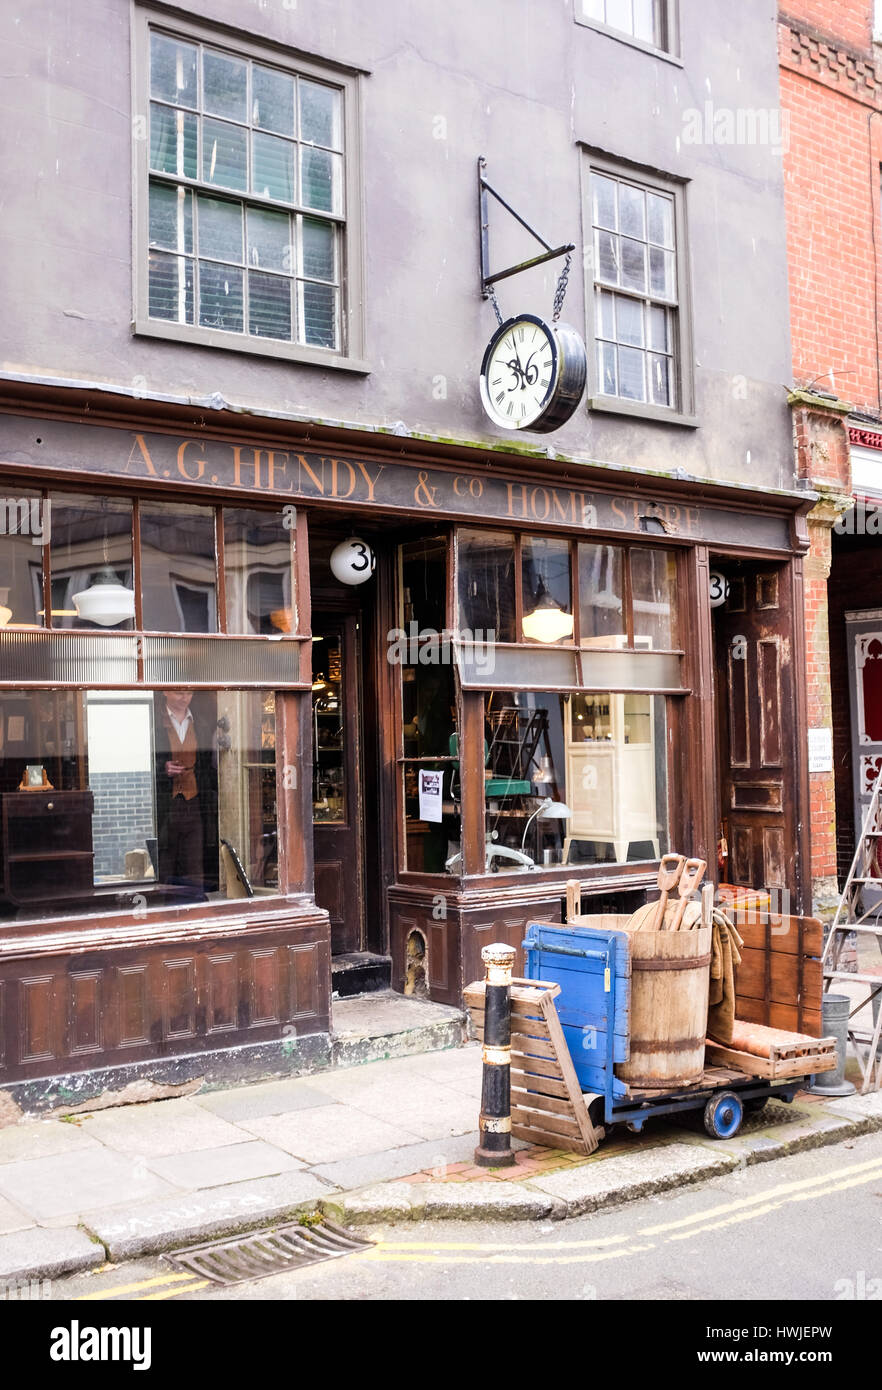 Hendy antique shop Hastings Old Town East Sussex UK - Stock Image